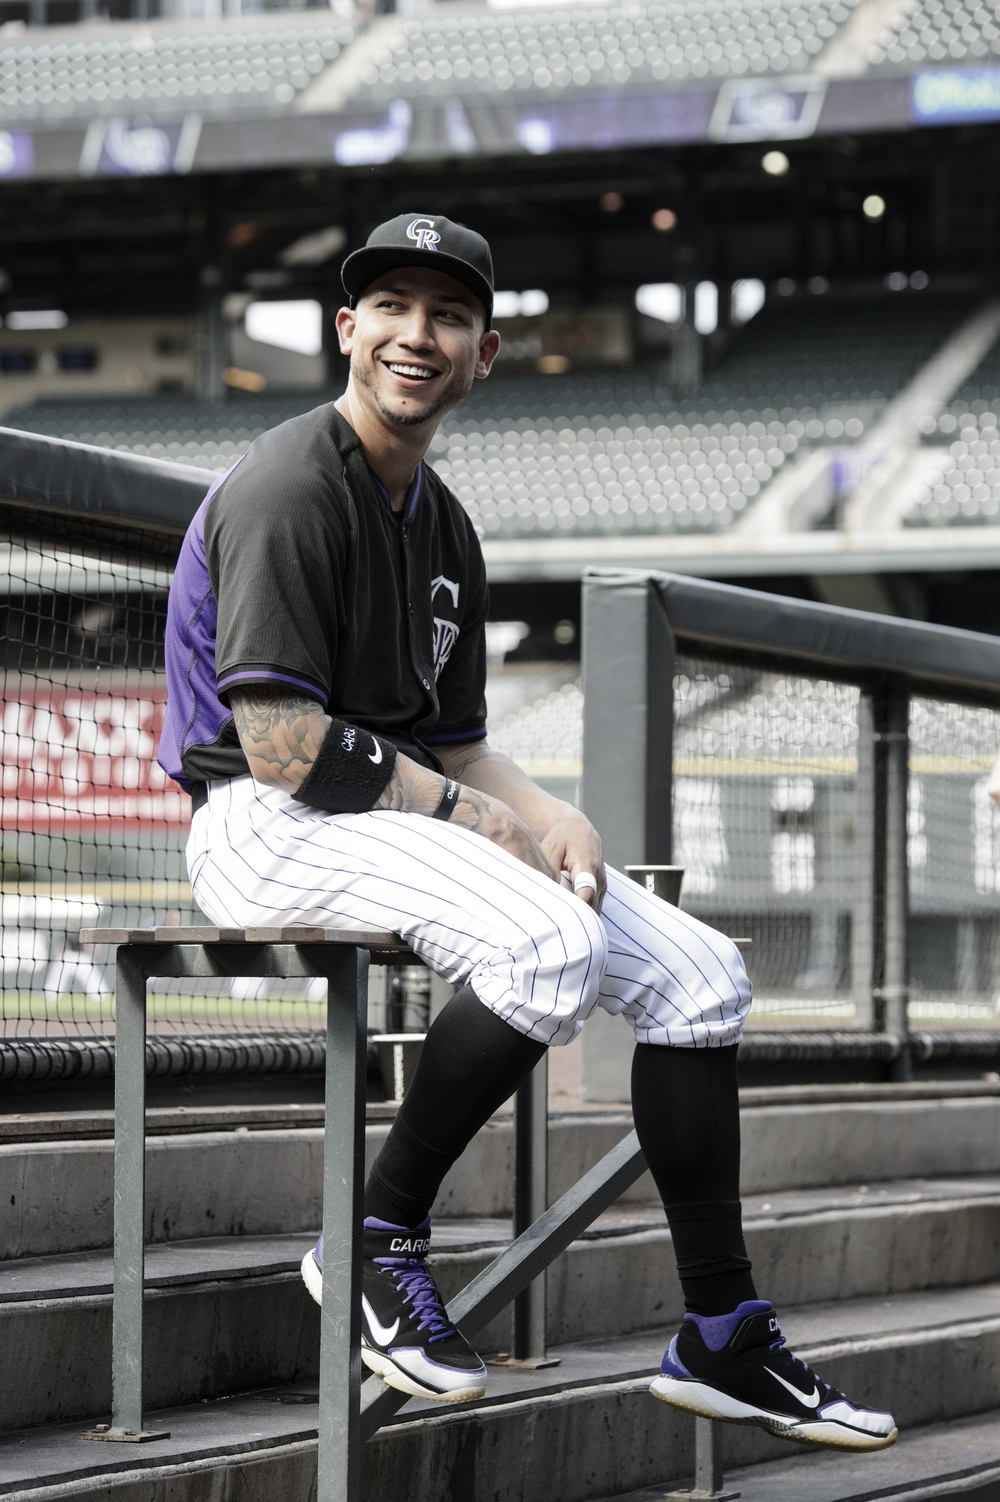 Colorado Rockies' outfielder Carlos Gonzalez wearing classic high socks